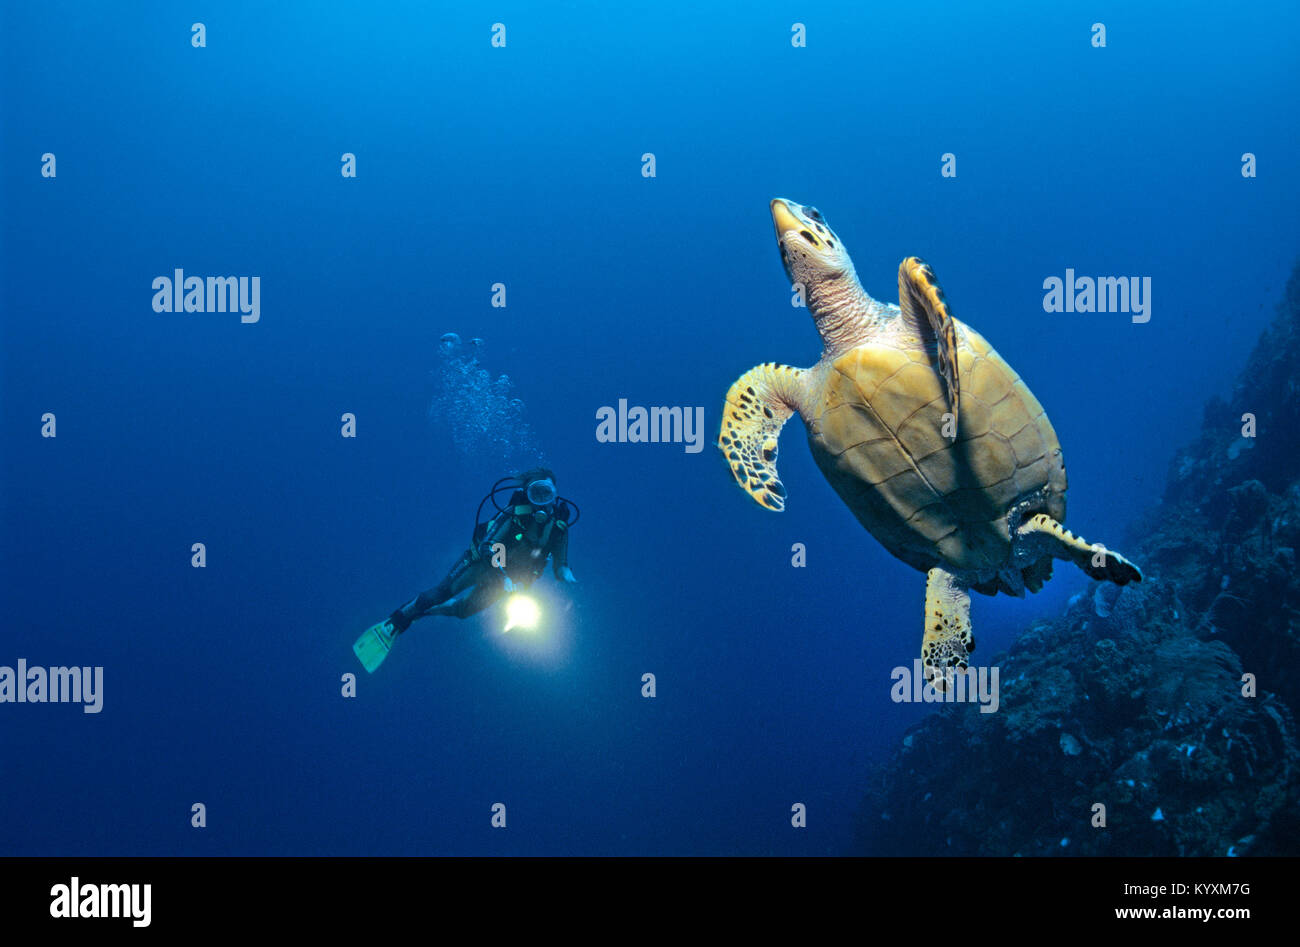 Scuba diver and Hawksbill turtle (Eretmochelys imbricata), Cozumel island, Yucatan, Mexico, Carribean - Stock Image